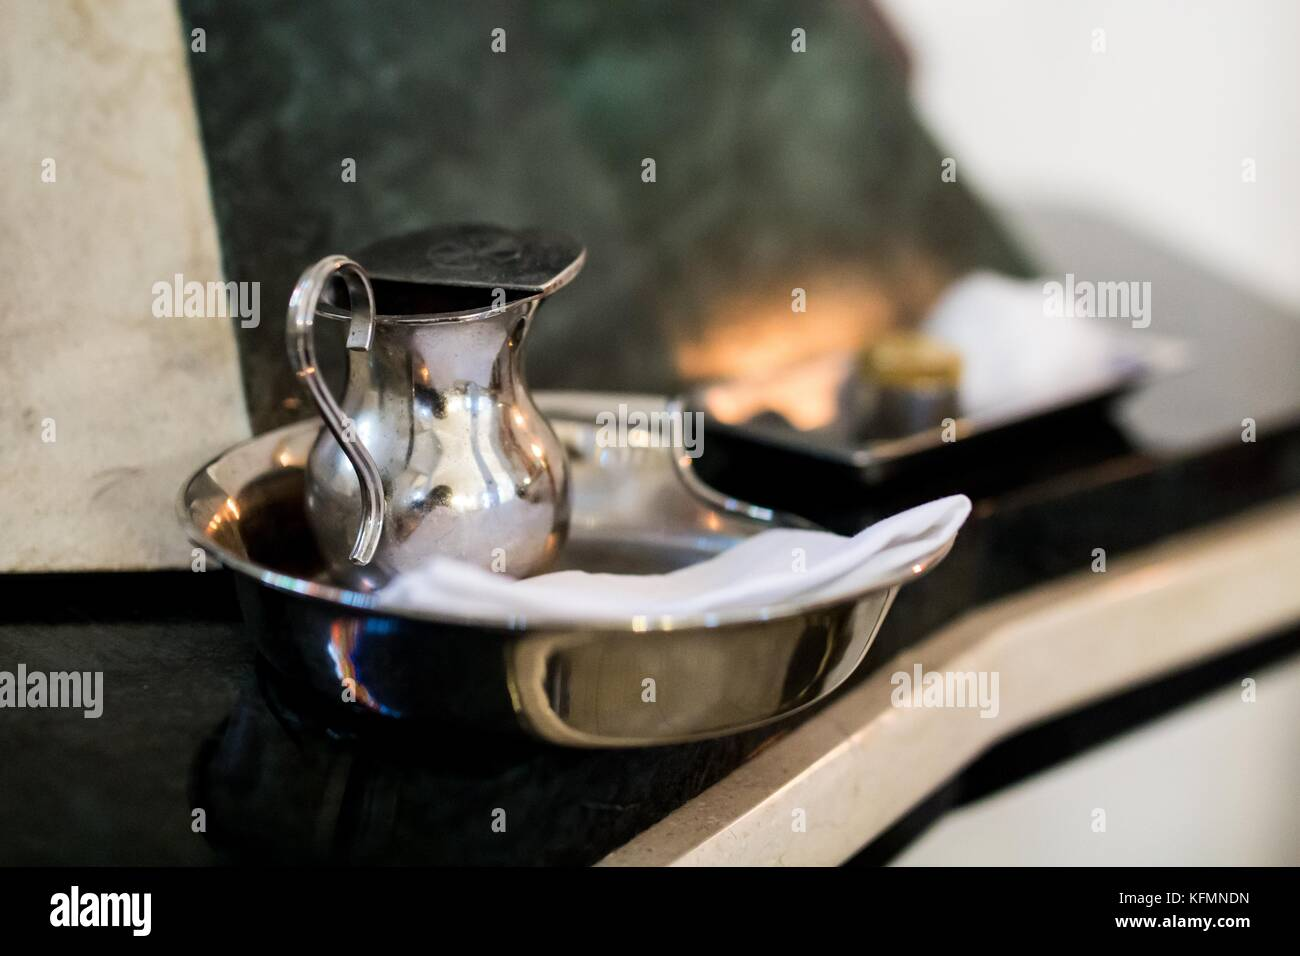 liturgical vessels for christening - baptismal font and jug - Stock Image